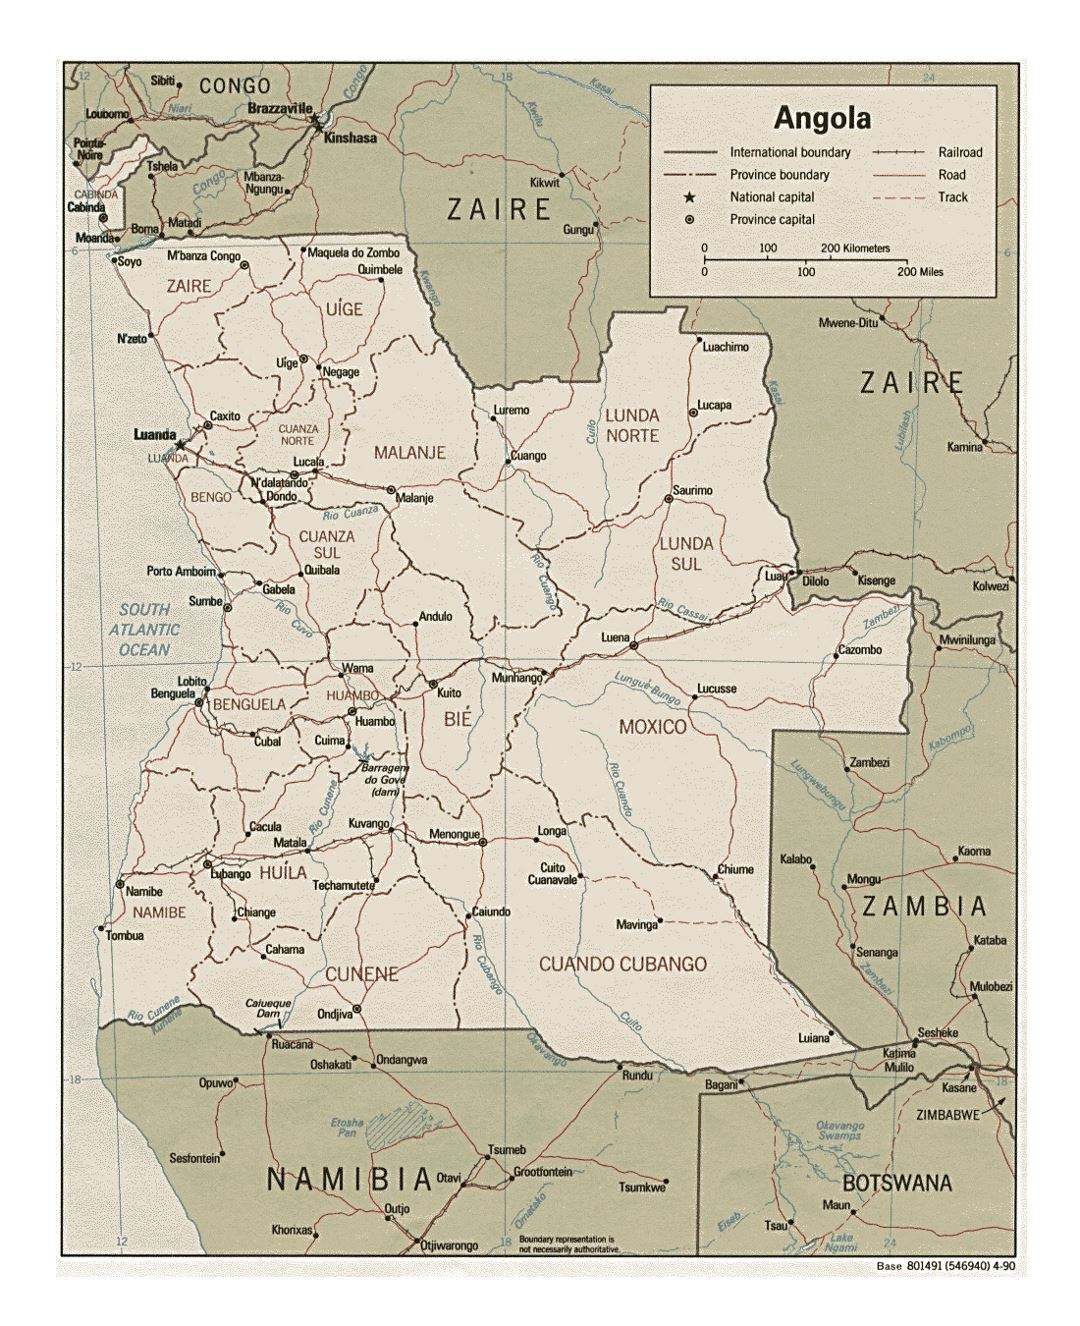 Detailed political and administrative map of Angola with roads, railroads and major cities - 1990